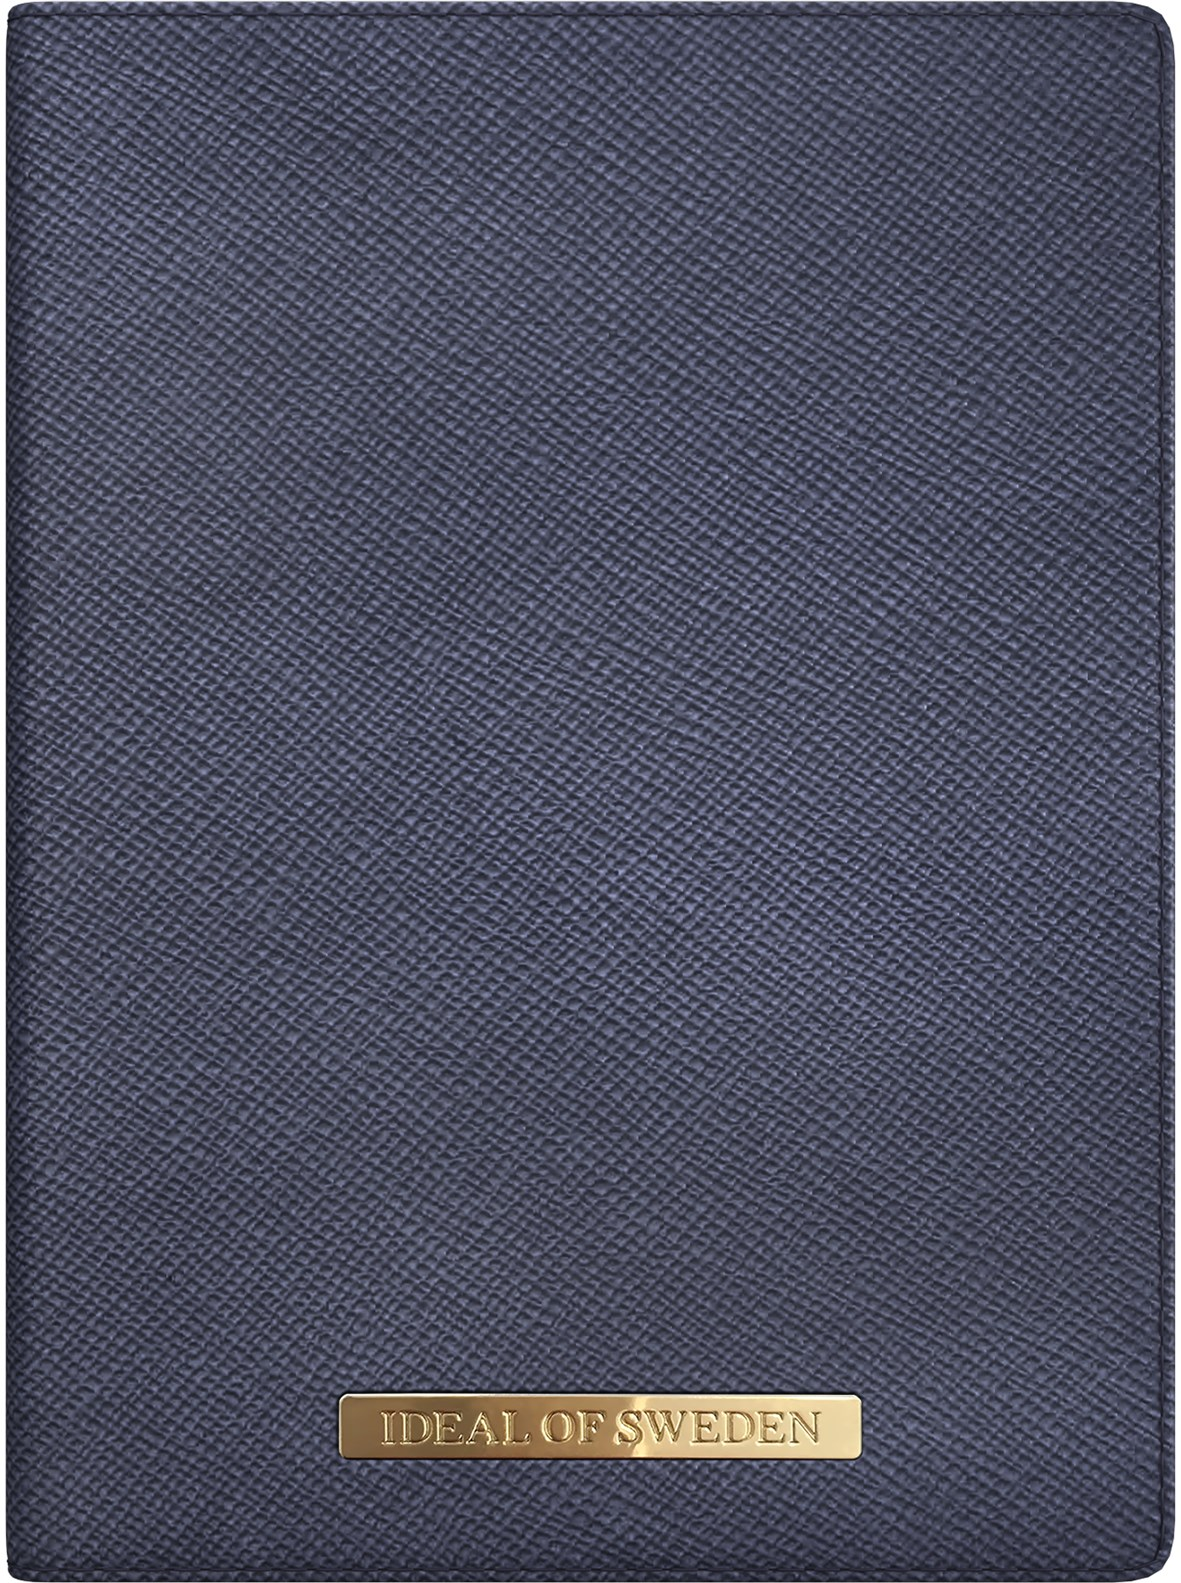 iDeal of Sweden Ideal Passport Cover Navy